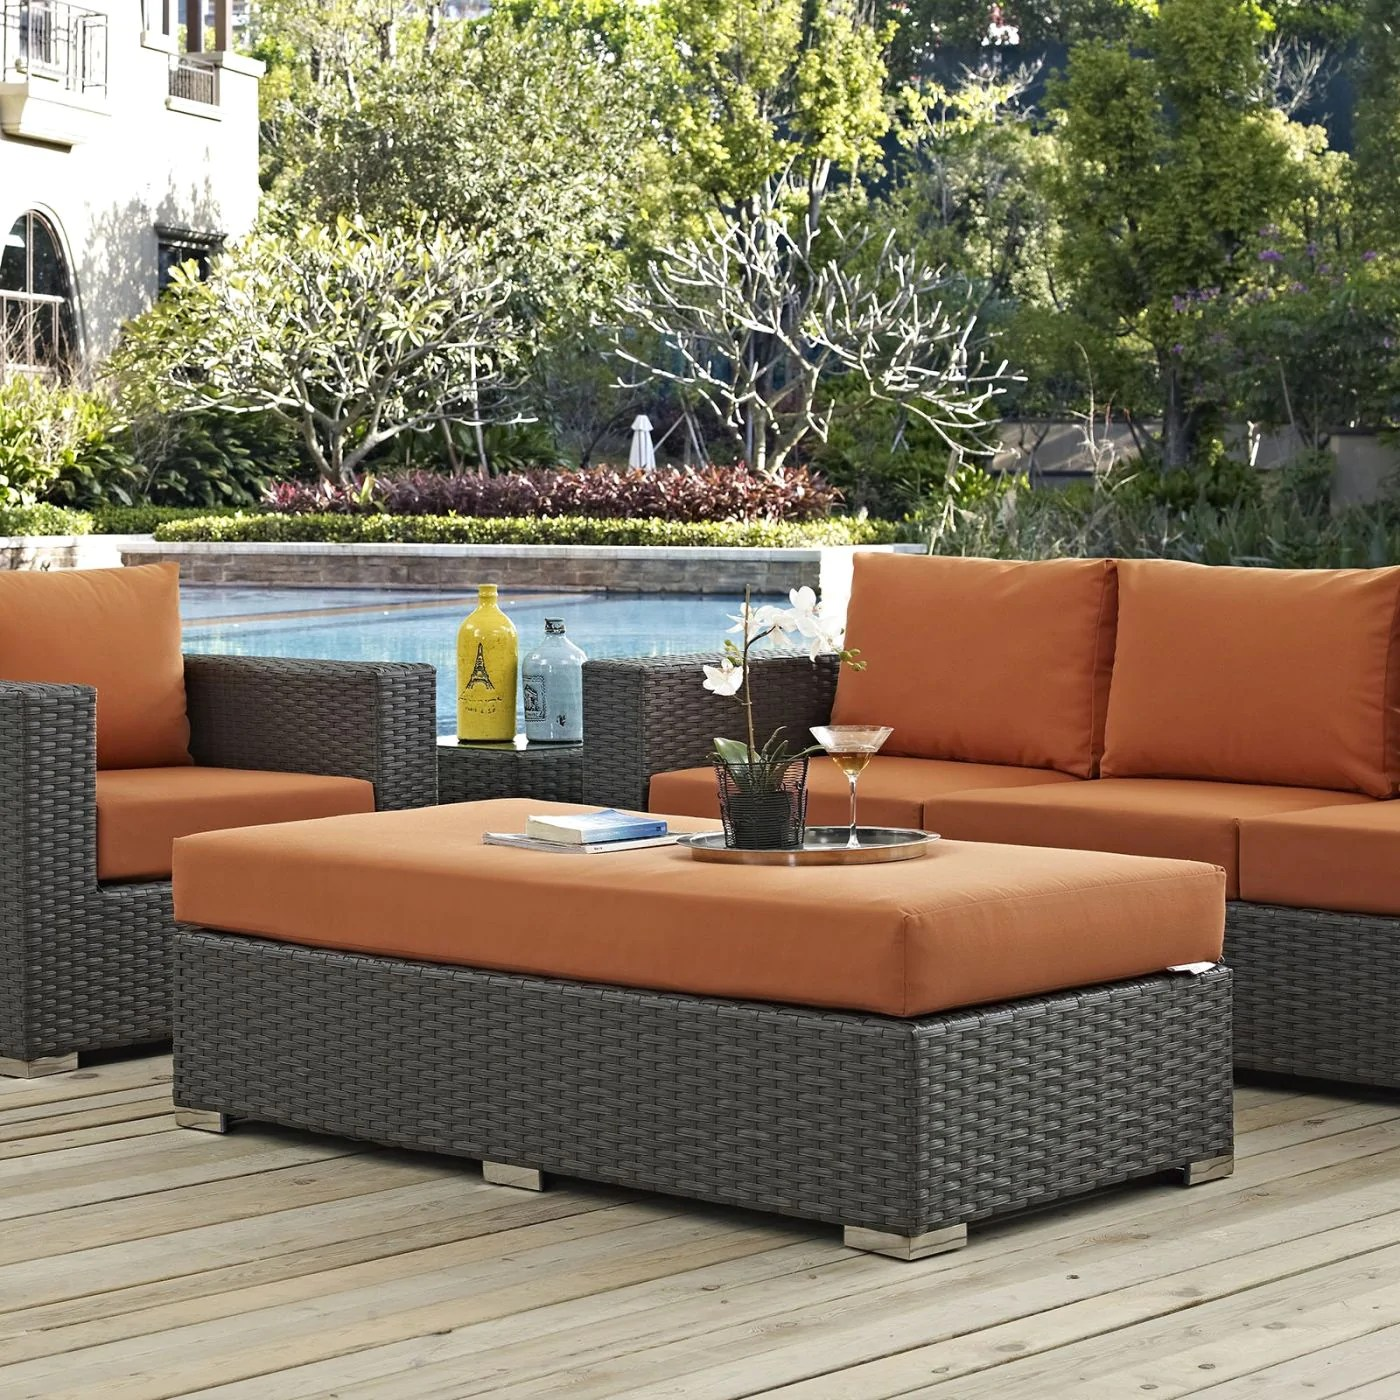 Patio Outdoor Modway Outdoor Ottomans On Sale Eei 1863 Chc Tus Sojourn Outdoor Patio Fabric Rattan Sunbrella Rectangle Ottoman Only Only 364 00 At Contemporary